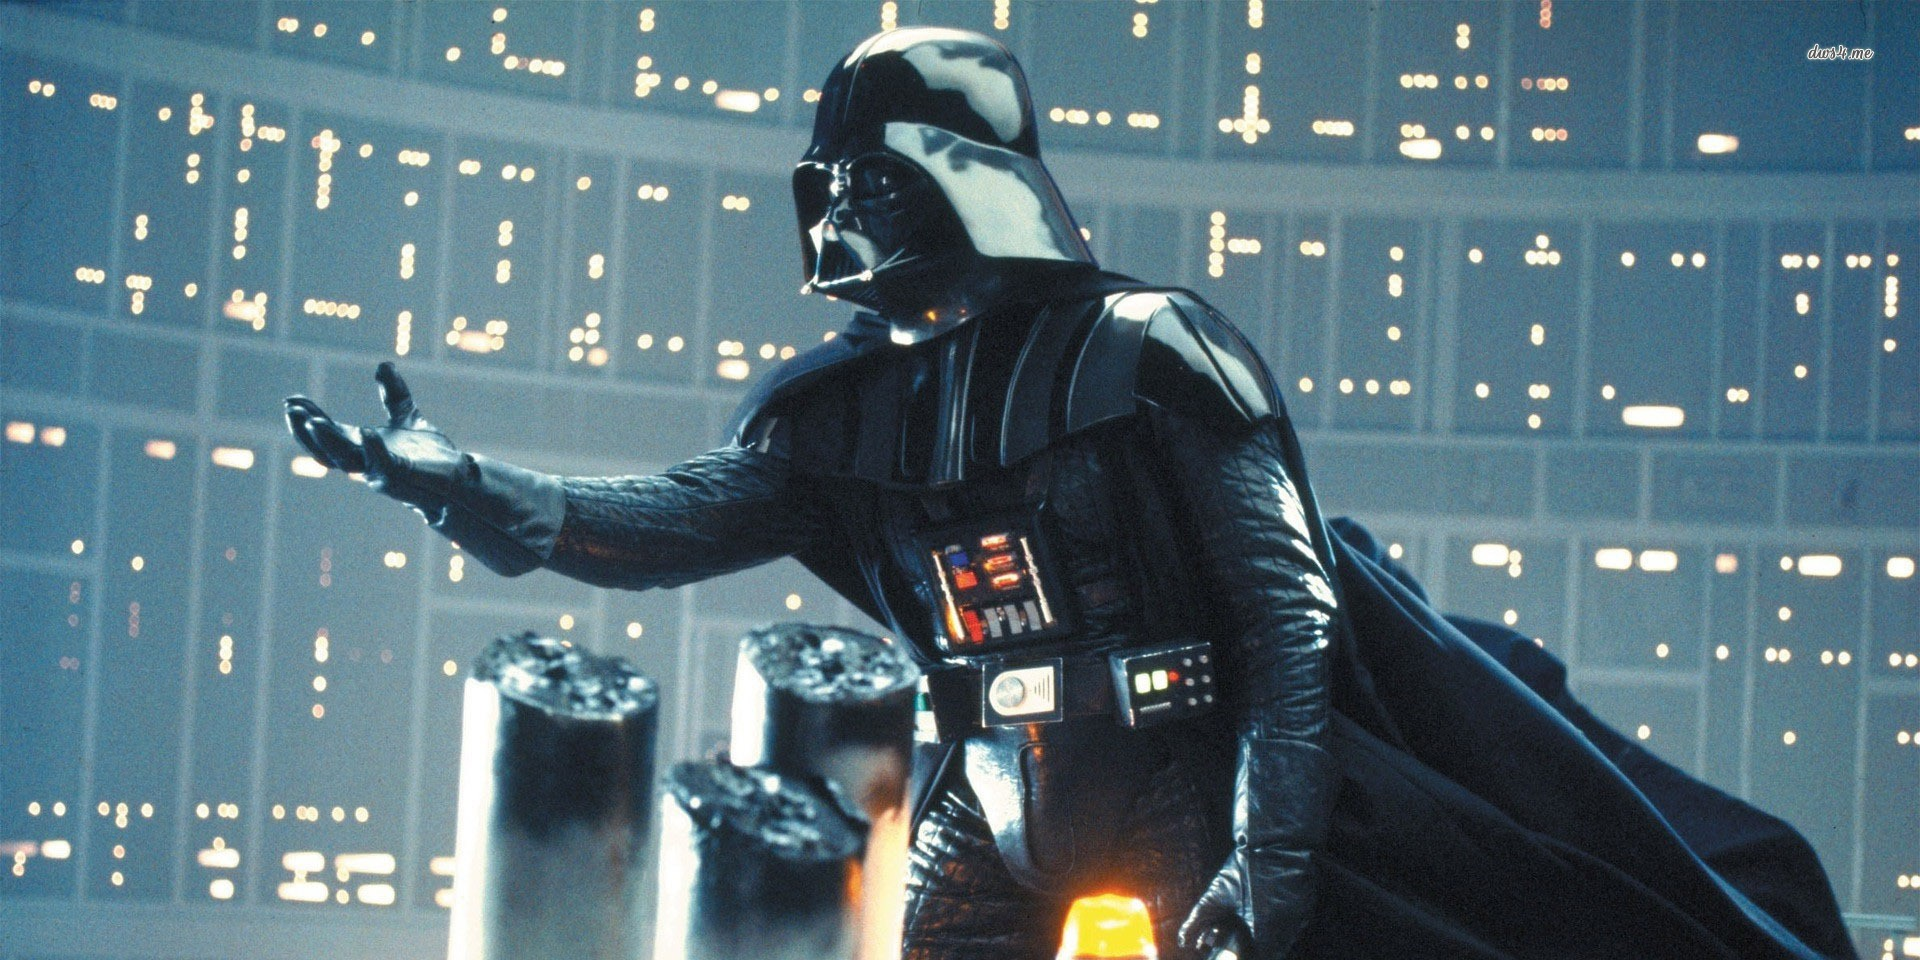 Vader extends his hand, and with it, a villainous offer. The reason behind the offer are why he is a sympathetic villain.